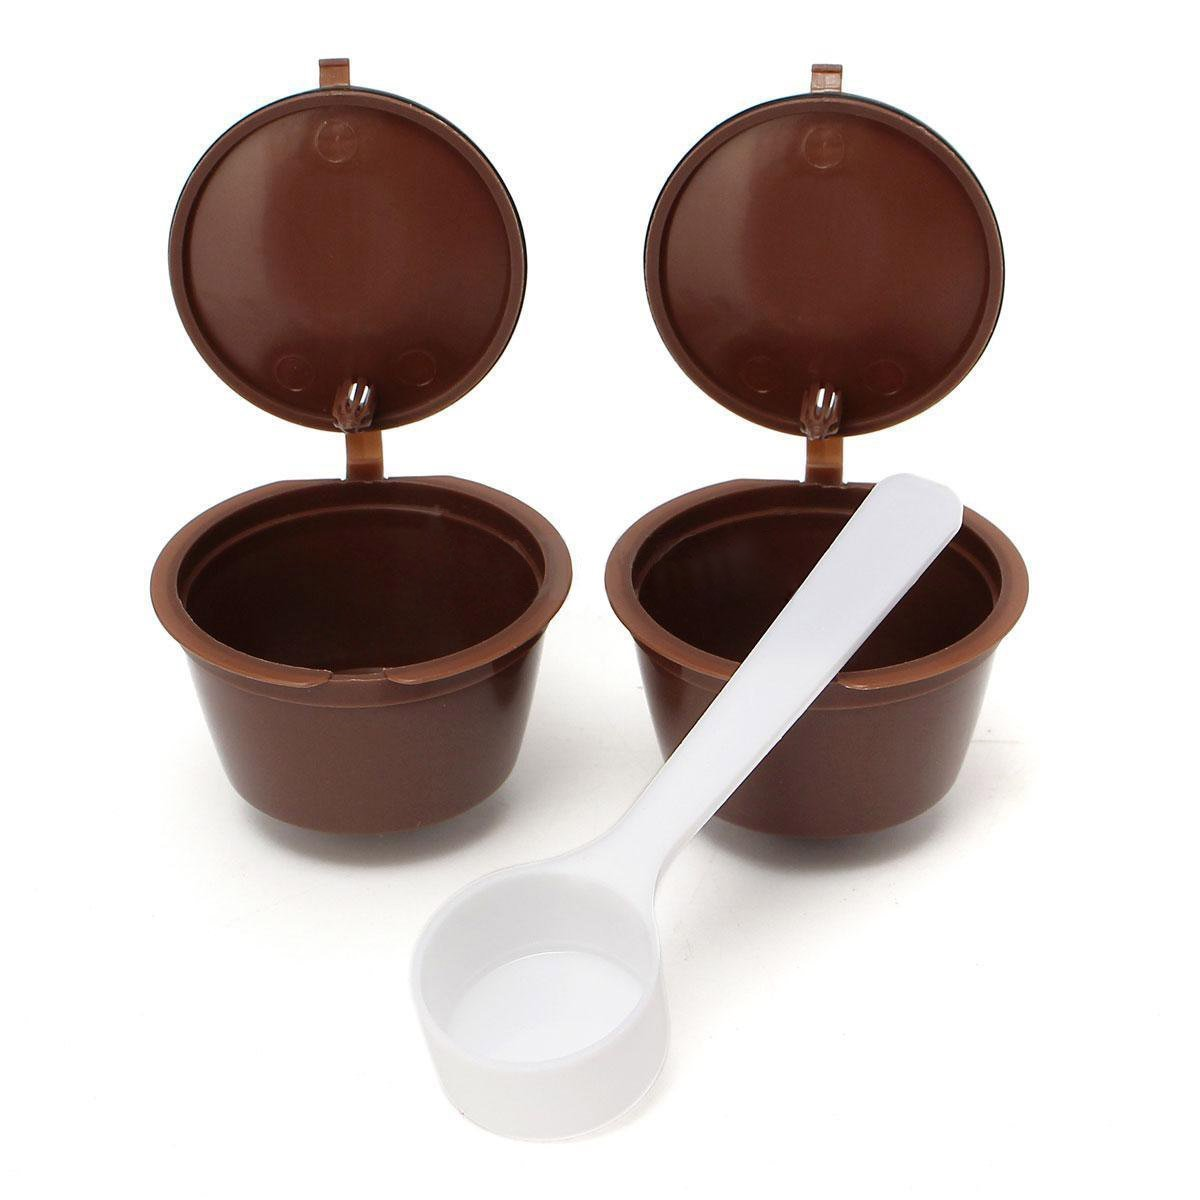 Coffee filter cup - TOOGOO(R) 2 x Reusable Coffee filter cup for DOLCE GUSTO Machines SHOMAGT17749